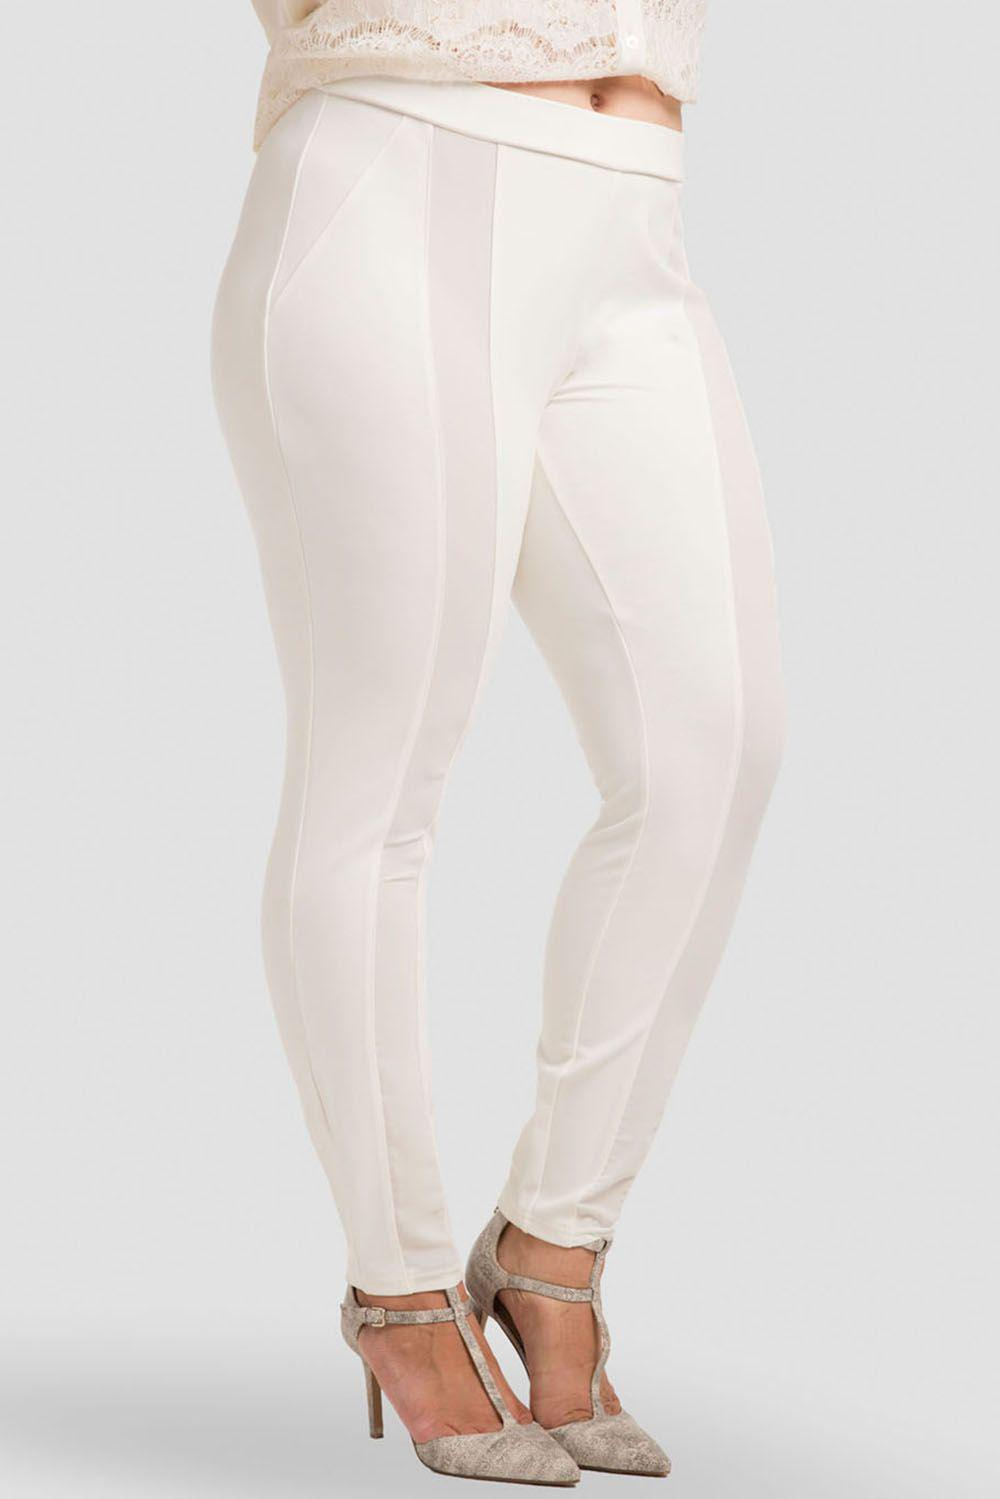 Plus Size Cindy Ivory Ponte Legging with Sheer Panel